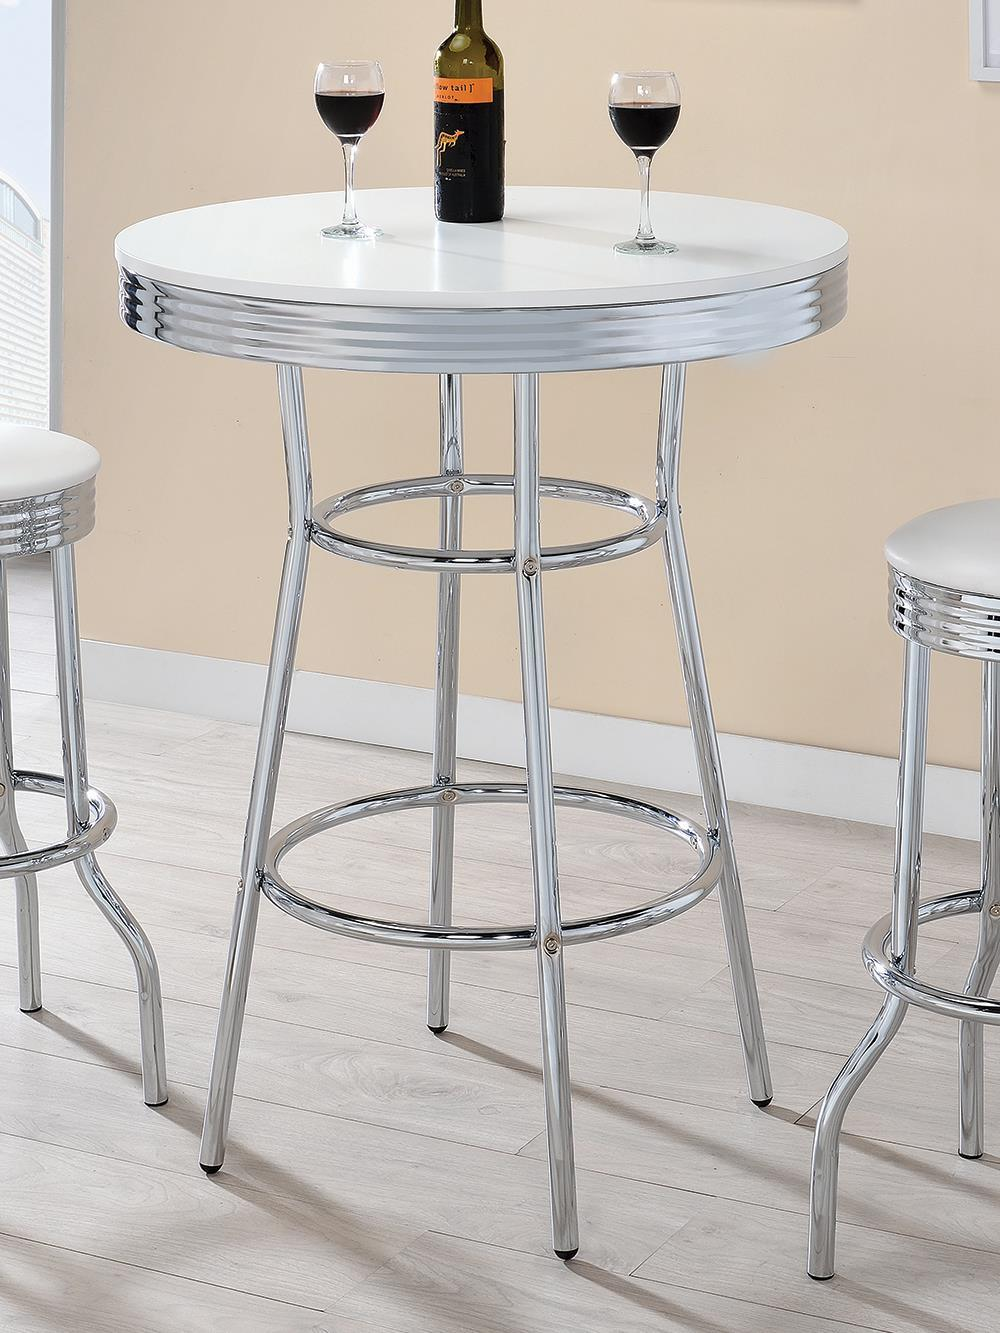 Rec Room/ Bar Tables: Chrome/glass - Round Bar Table Chrome And Glossy White